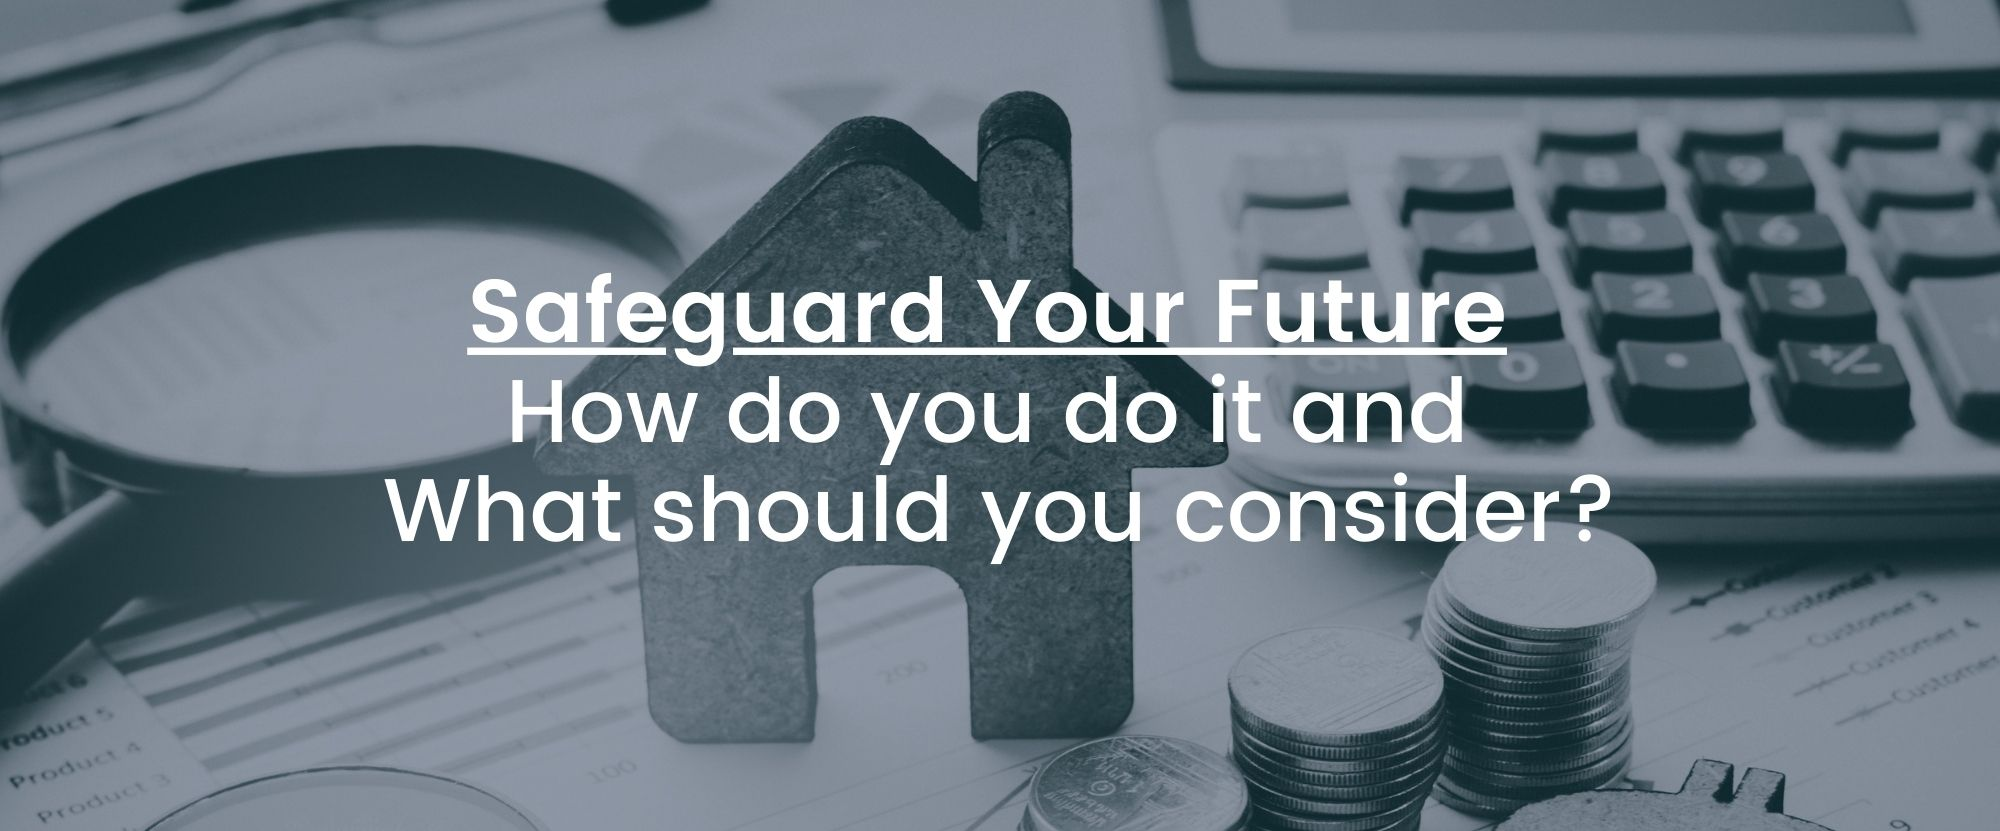 Safeguard Your Future: How do you do it and What should you consider?